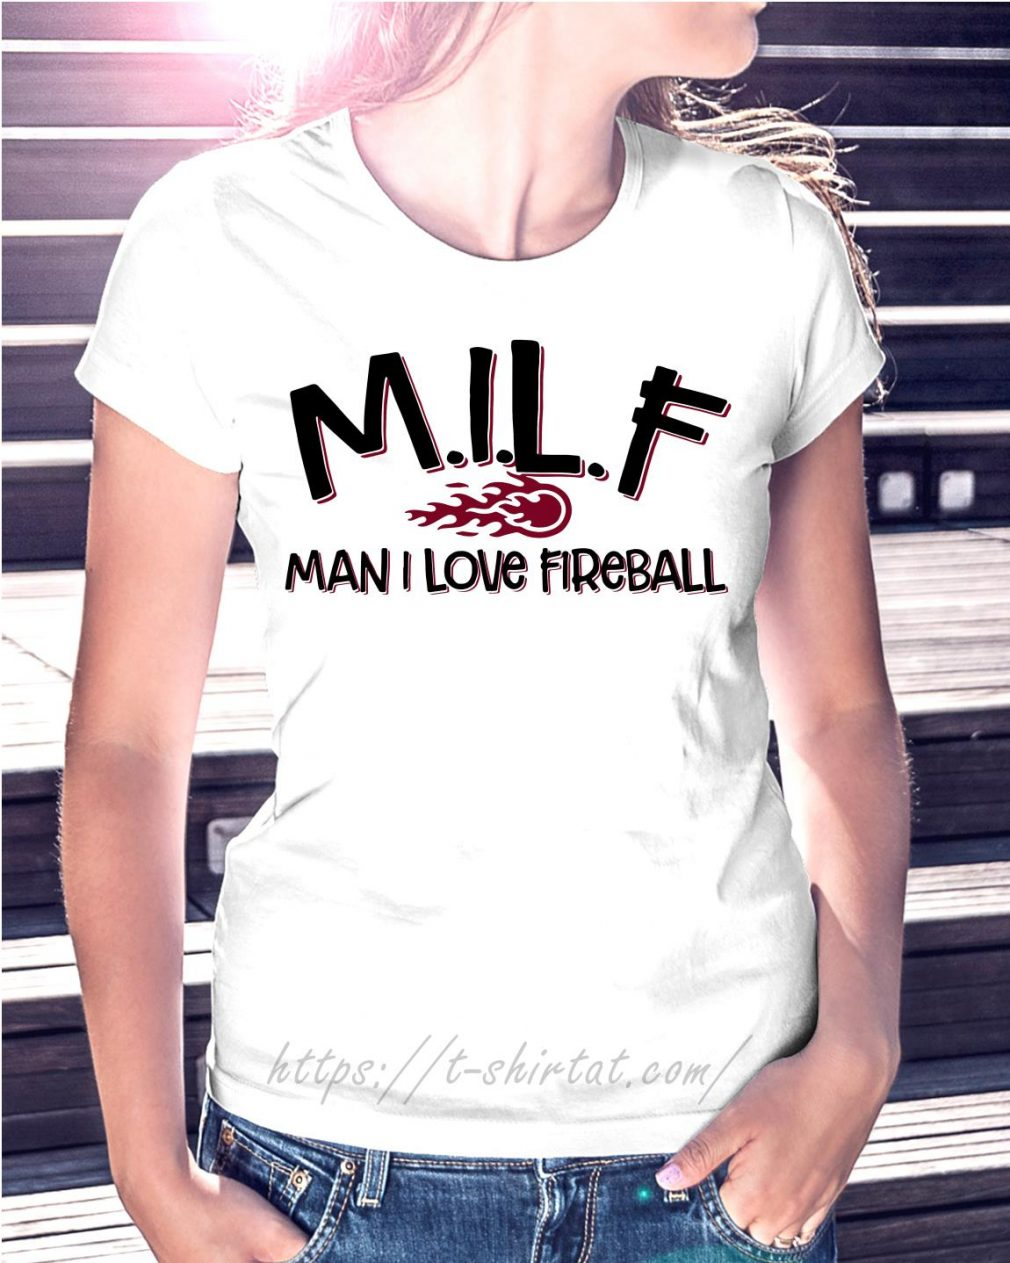 MILF man I love fireball